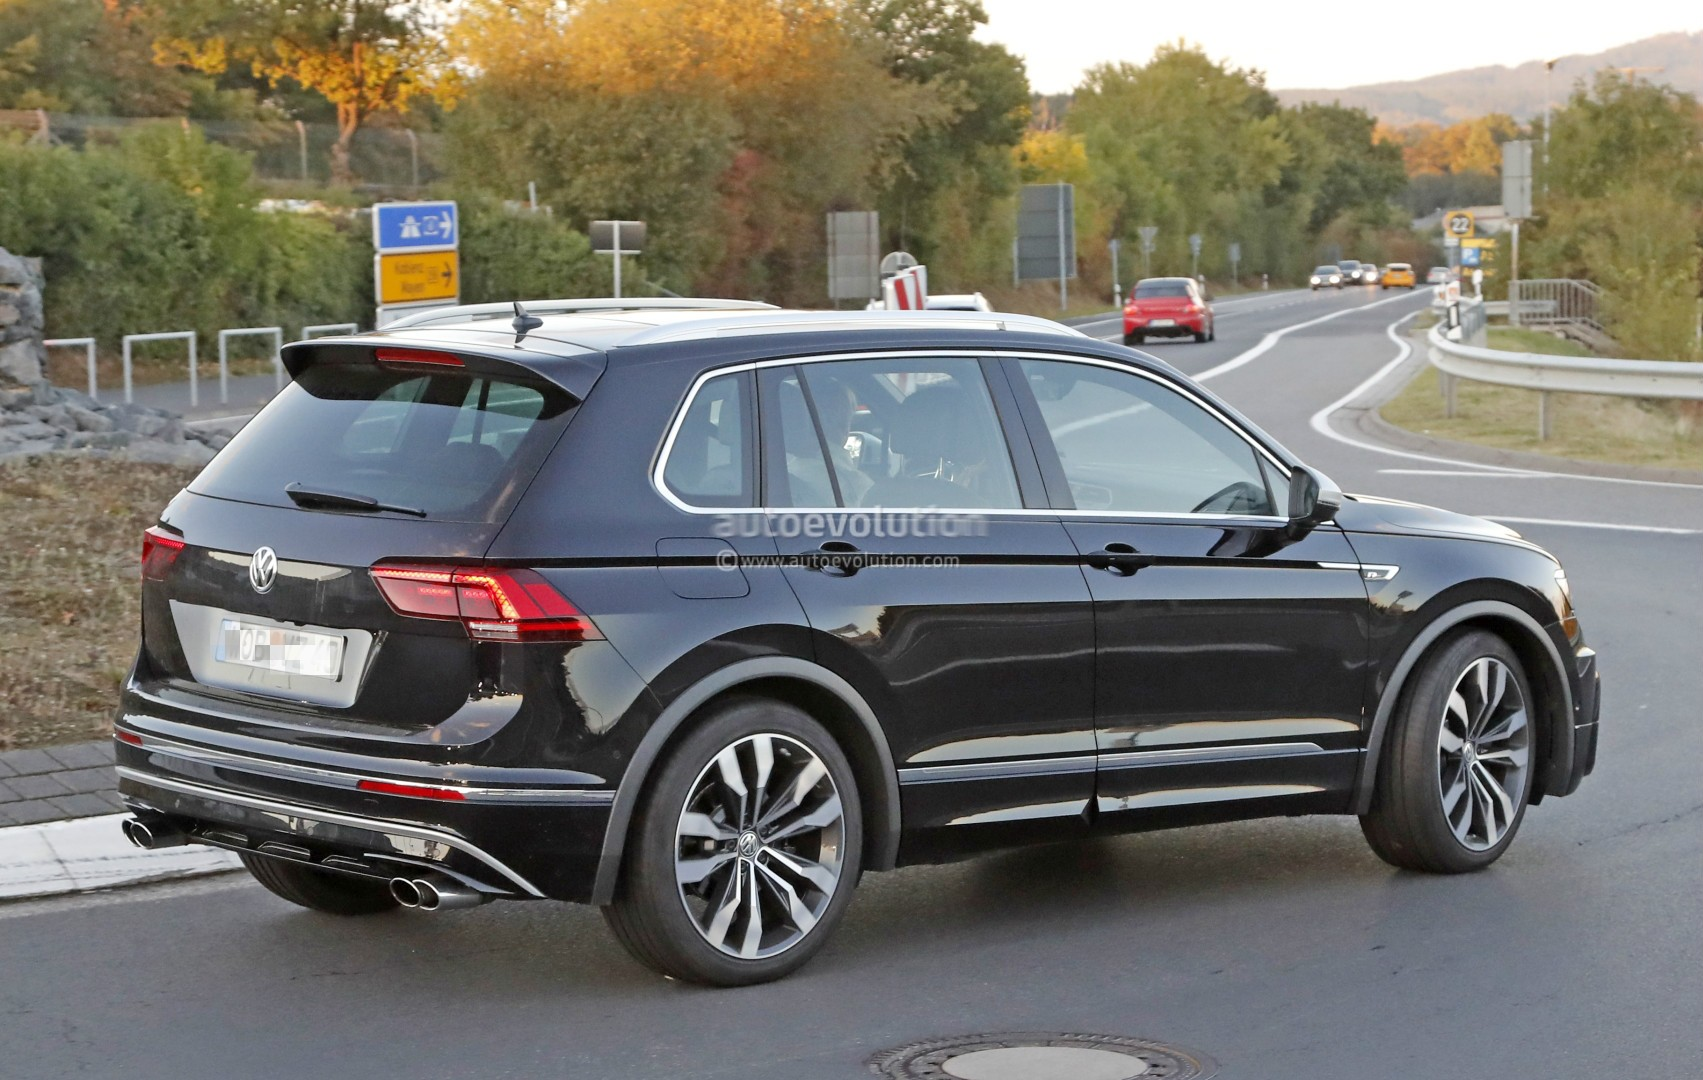 2018 Volkswagen Tiguan R Spotted at Nurburgring, Not Trying to Hide Its 310 HP - autoevolution